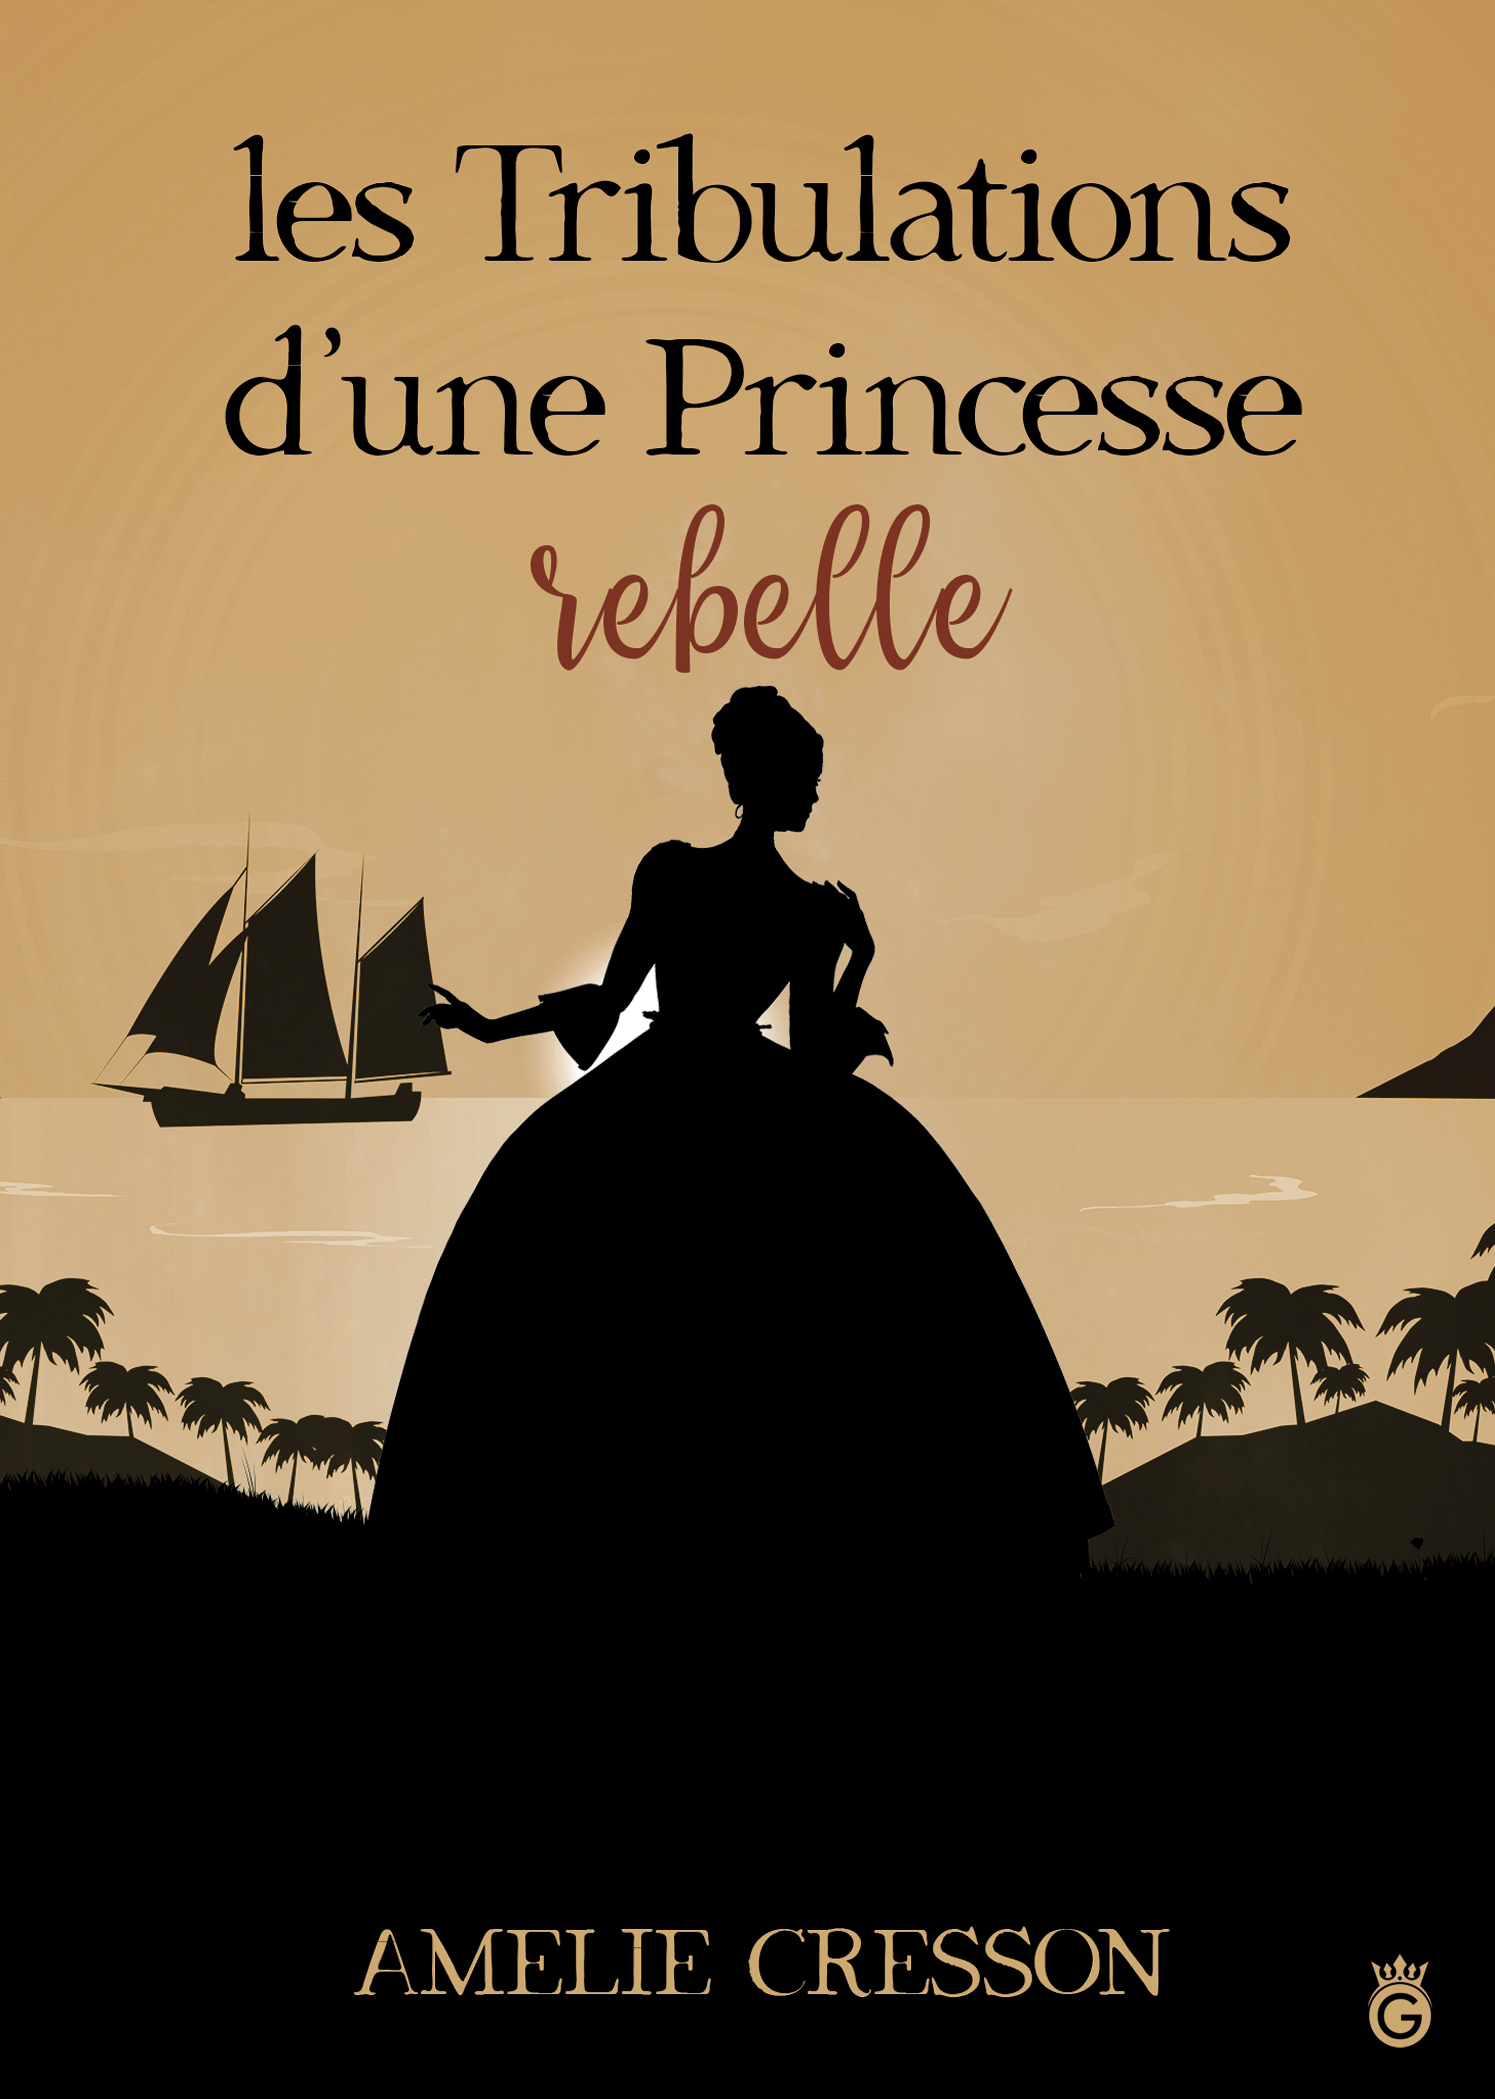 Les Tribulations d'une Princesse Rebelle